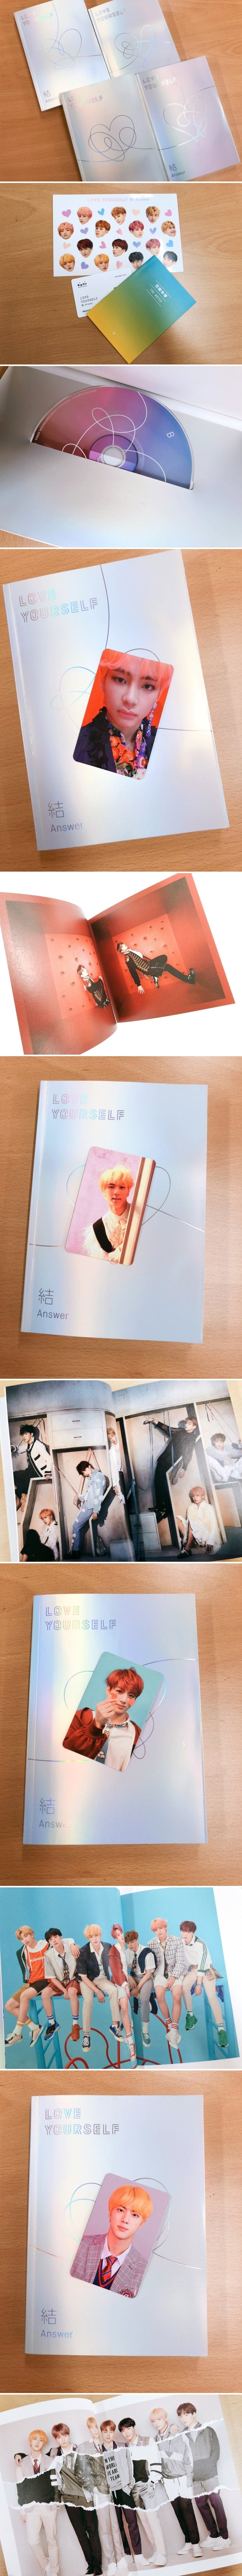 BTS Official LOVE YOURSELF / ANSWER Album Set CD – BTS mercharmy